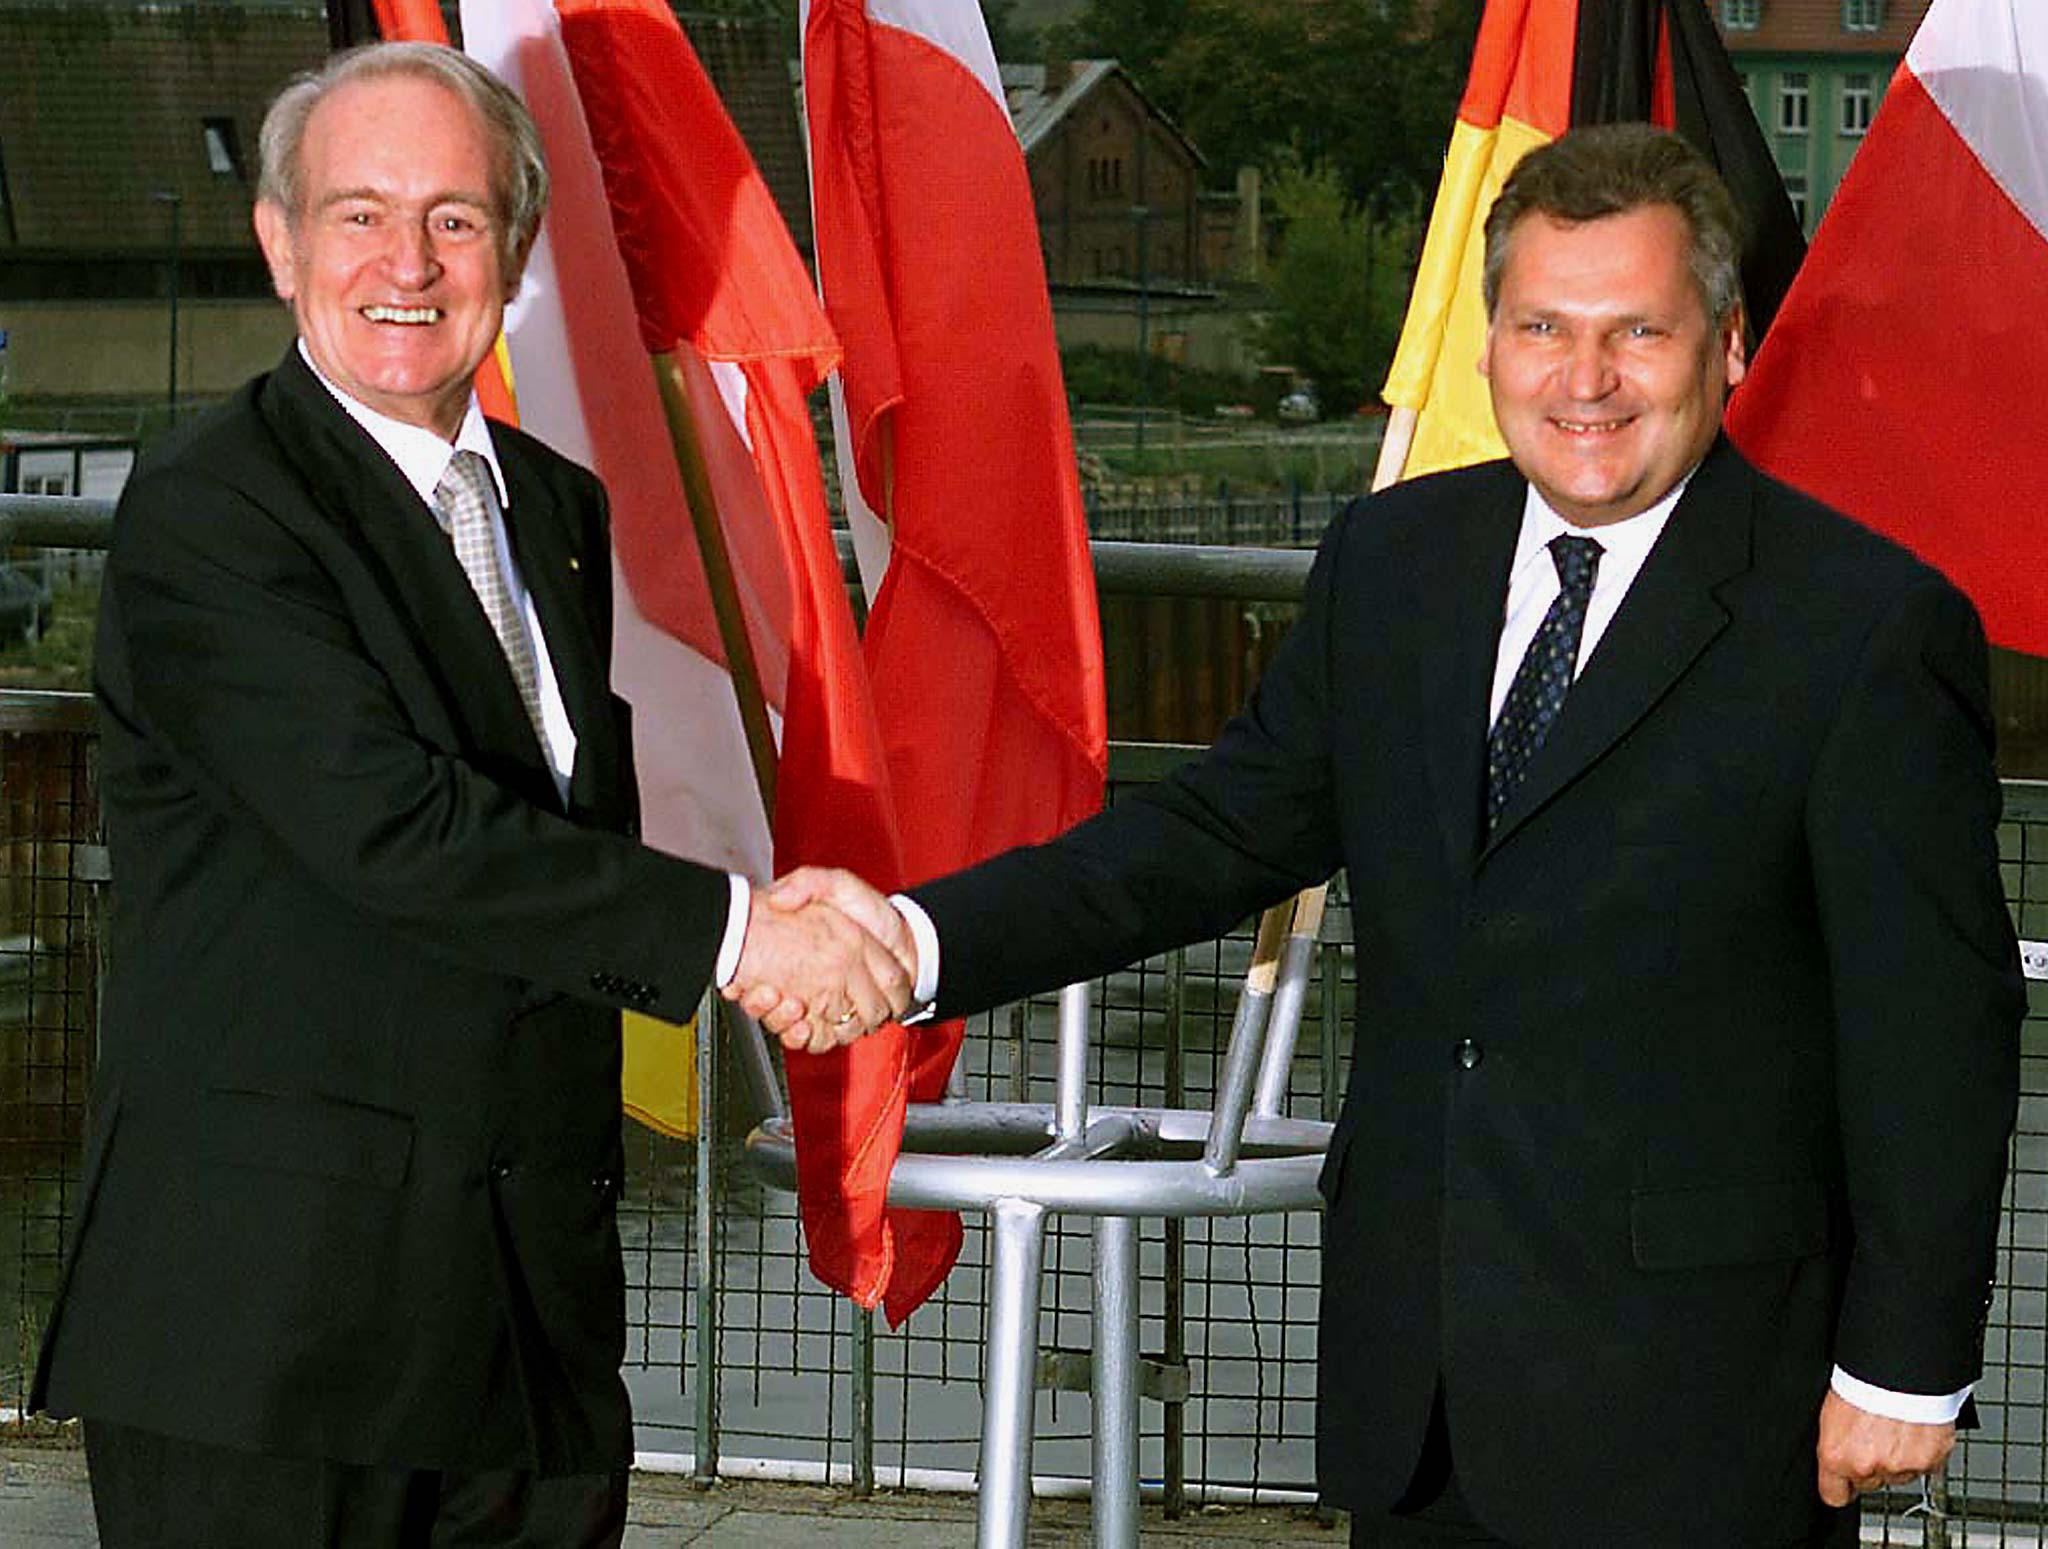 German President Johannes Rau (L) makes a symbolic handshake with Polish President Alexander Kwasniewski as they meet on the German-Polish border on the bridge between Frankfurt Oder and Slubice September 1. Rau and Kwasniewski take part in several ceremonies on Wednesday to mark the 60th anniversary of Nazi Germany's attack on Poland which was the start of World War II.